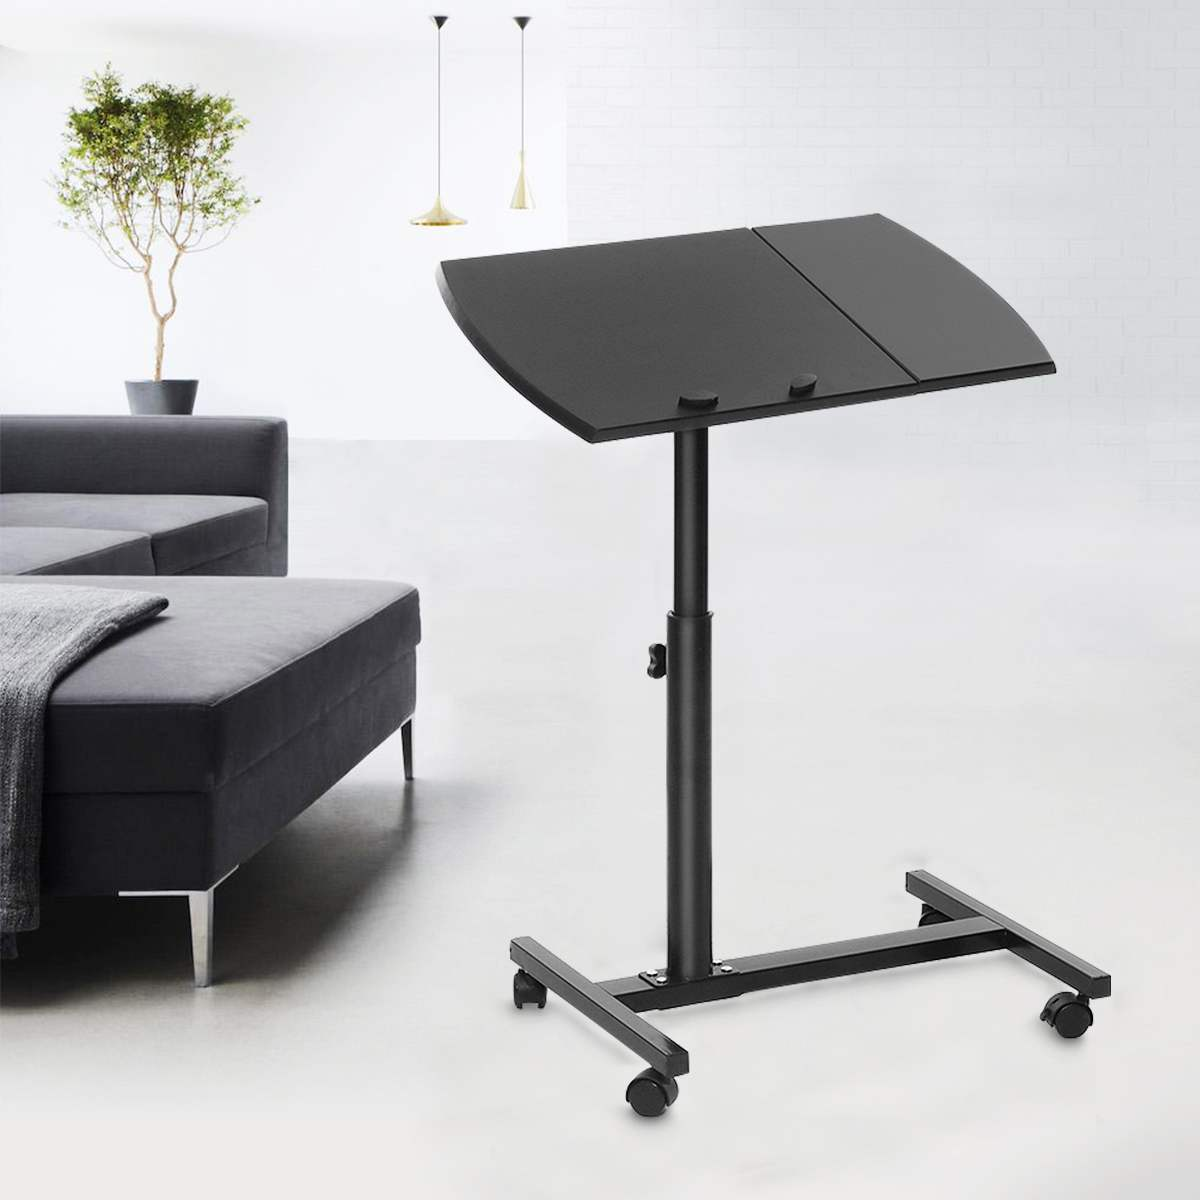 NEW Adjustable Height Laptop Stand Rolling Cart Desk Computer Table Desk Bed Sofa Tray Rolling Notebook Desk With Wheels